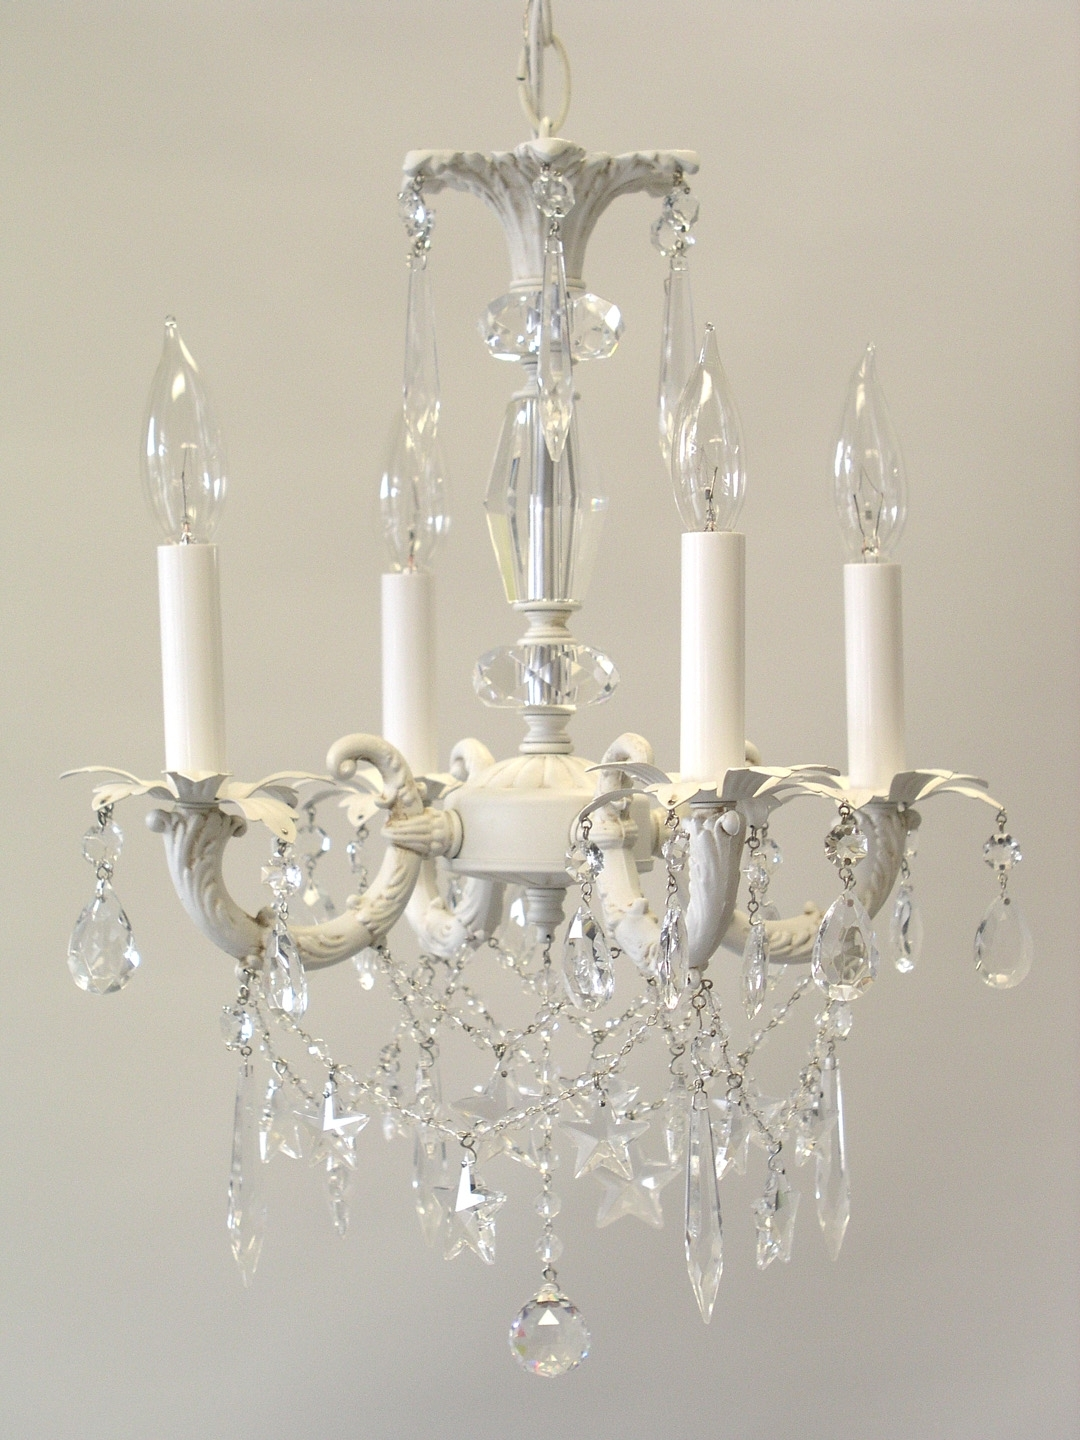 Small Shabby Chic Chandelier For 2017 More Shabby Chic Style Chandeliers (View 11 of 15)